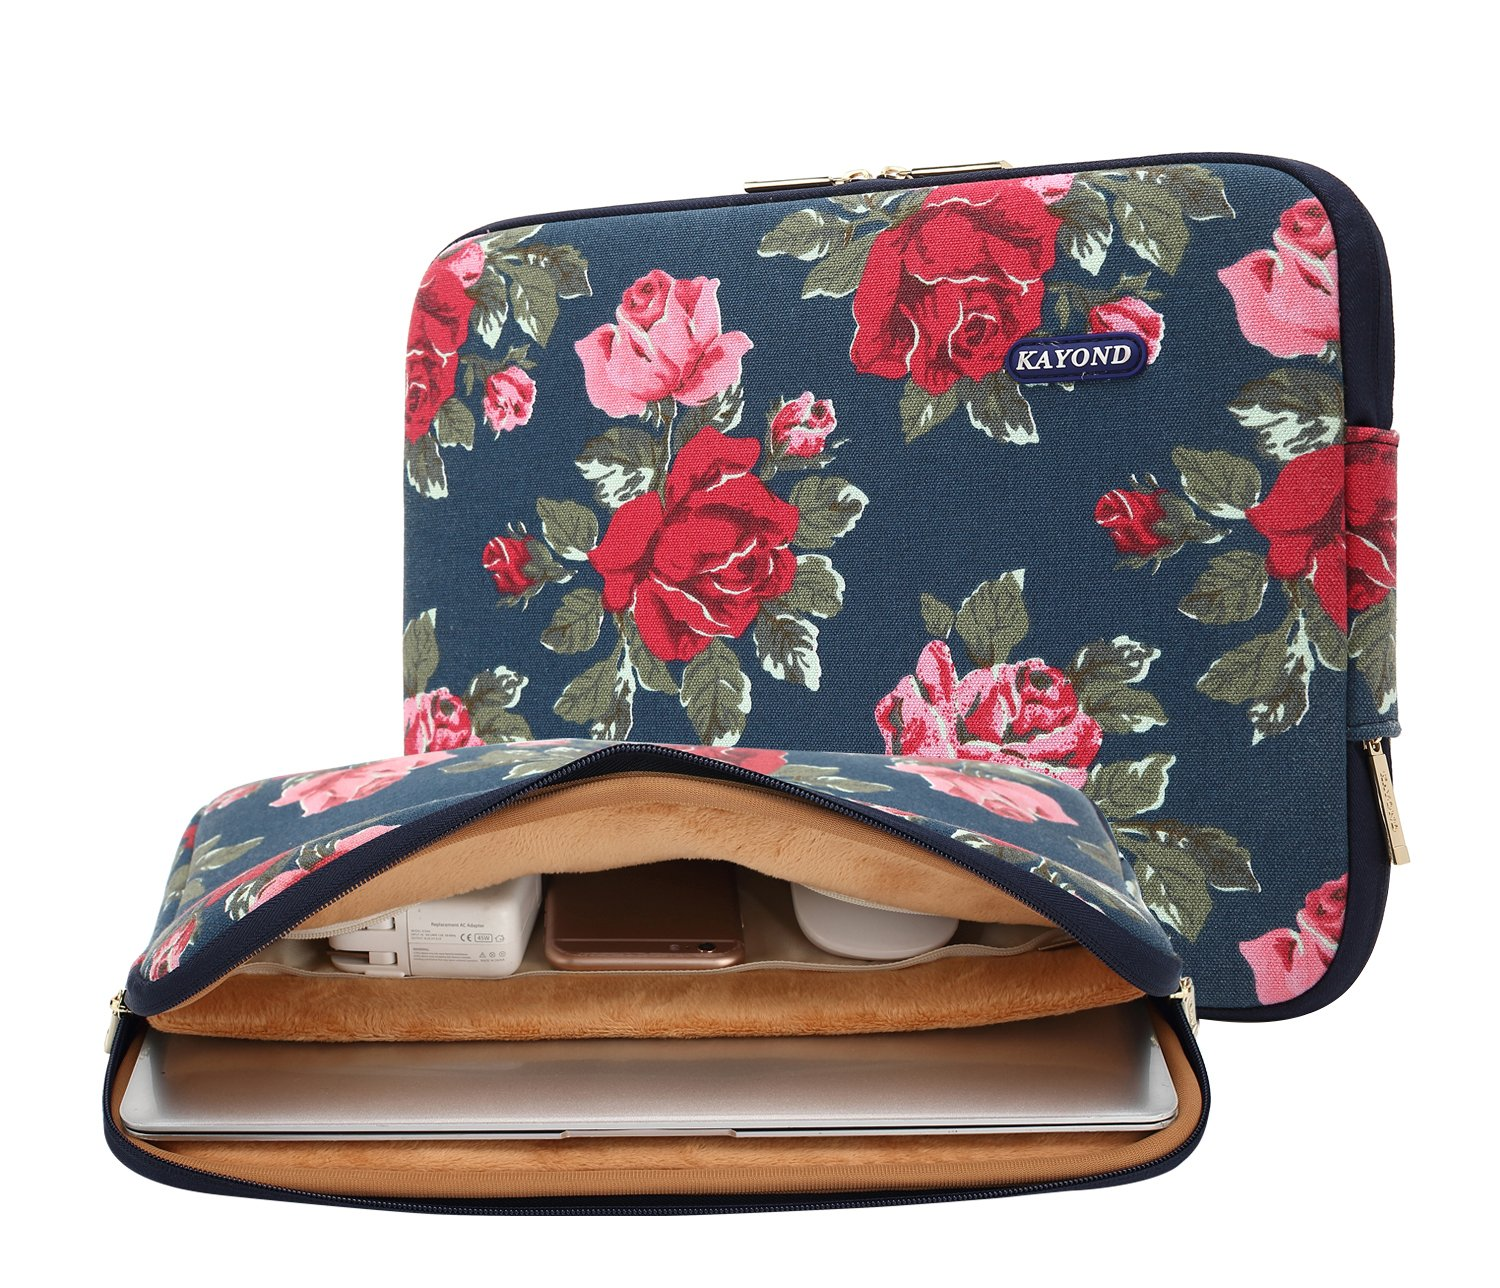 Kayond Canvas Water-Resistant 13 inch Laptop Sleeve -13 inch 13.3 inch Laptop case,12.9 inch Tablet Case Compatible MacBook(13-13.3 inches, Blue Peony)